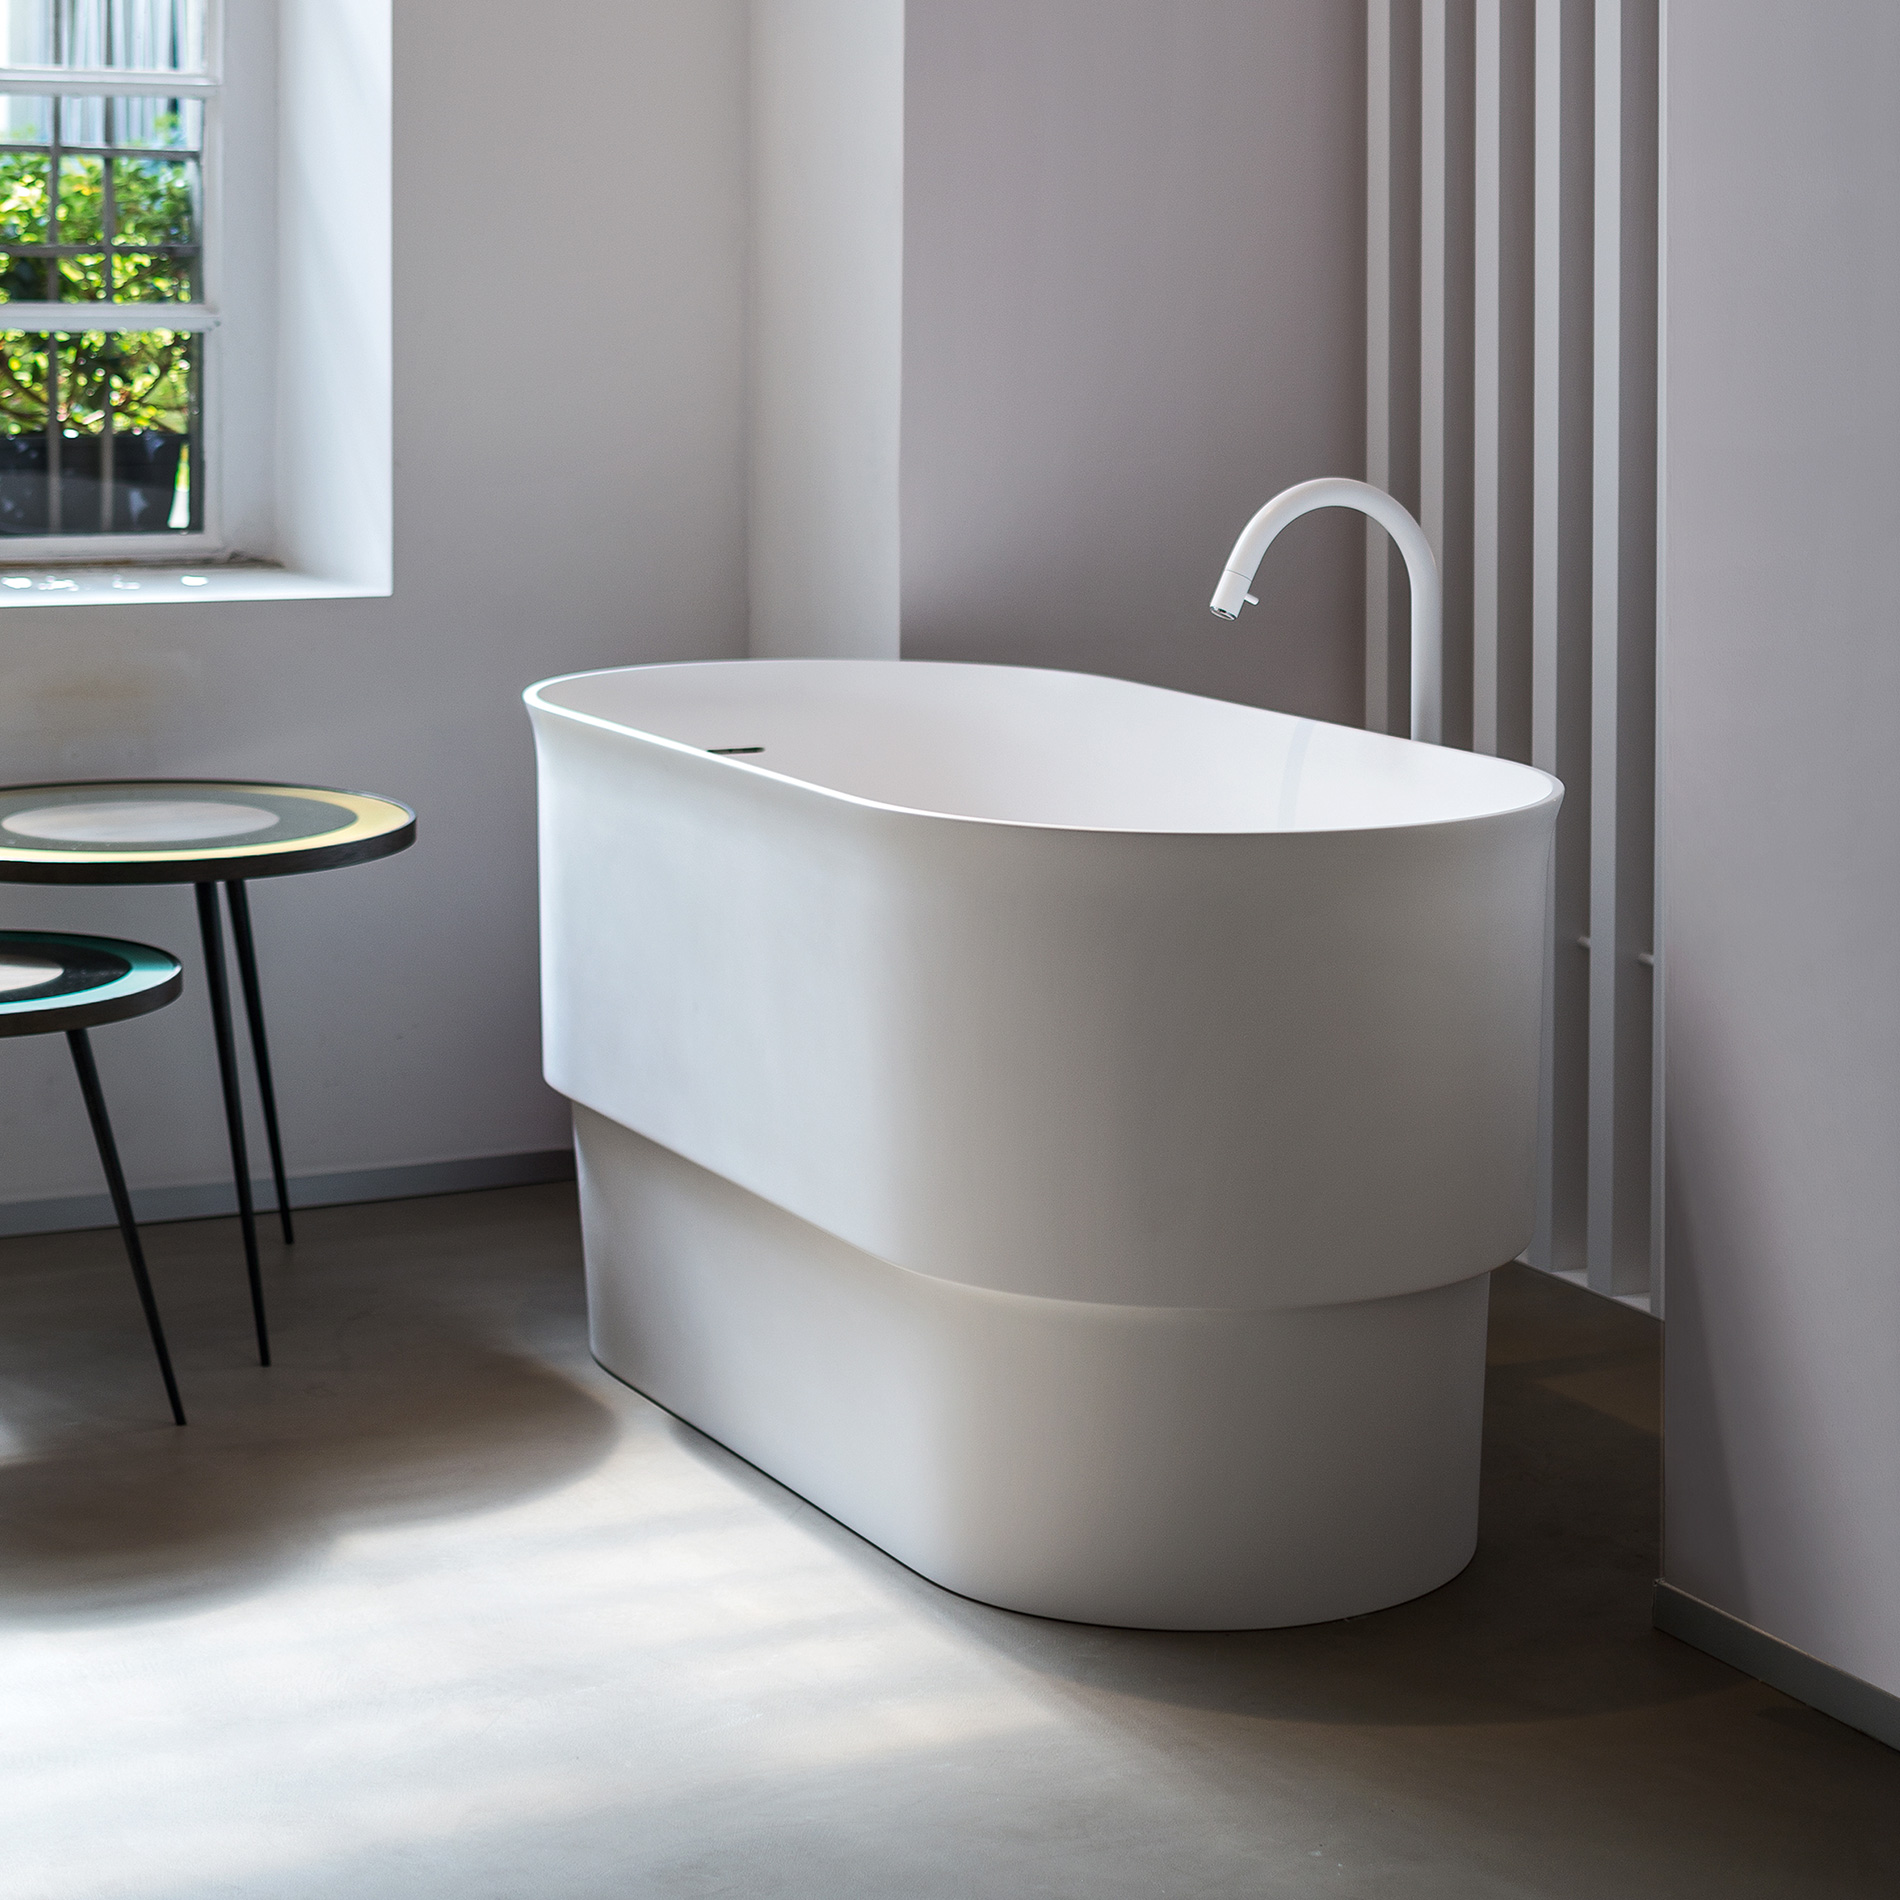 Nicos-International-home-products-Agape-tub-2